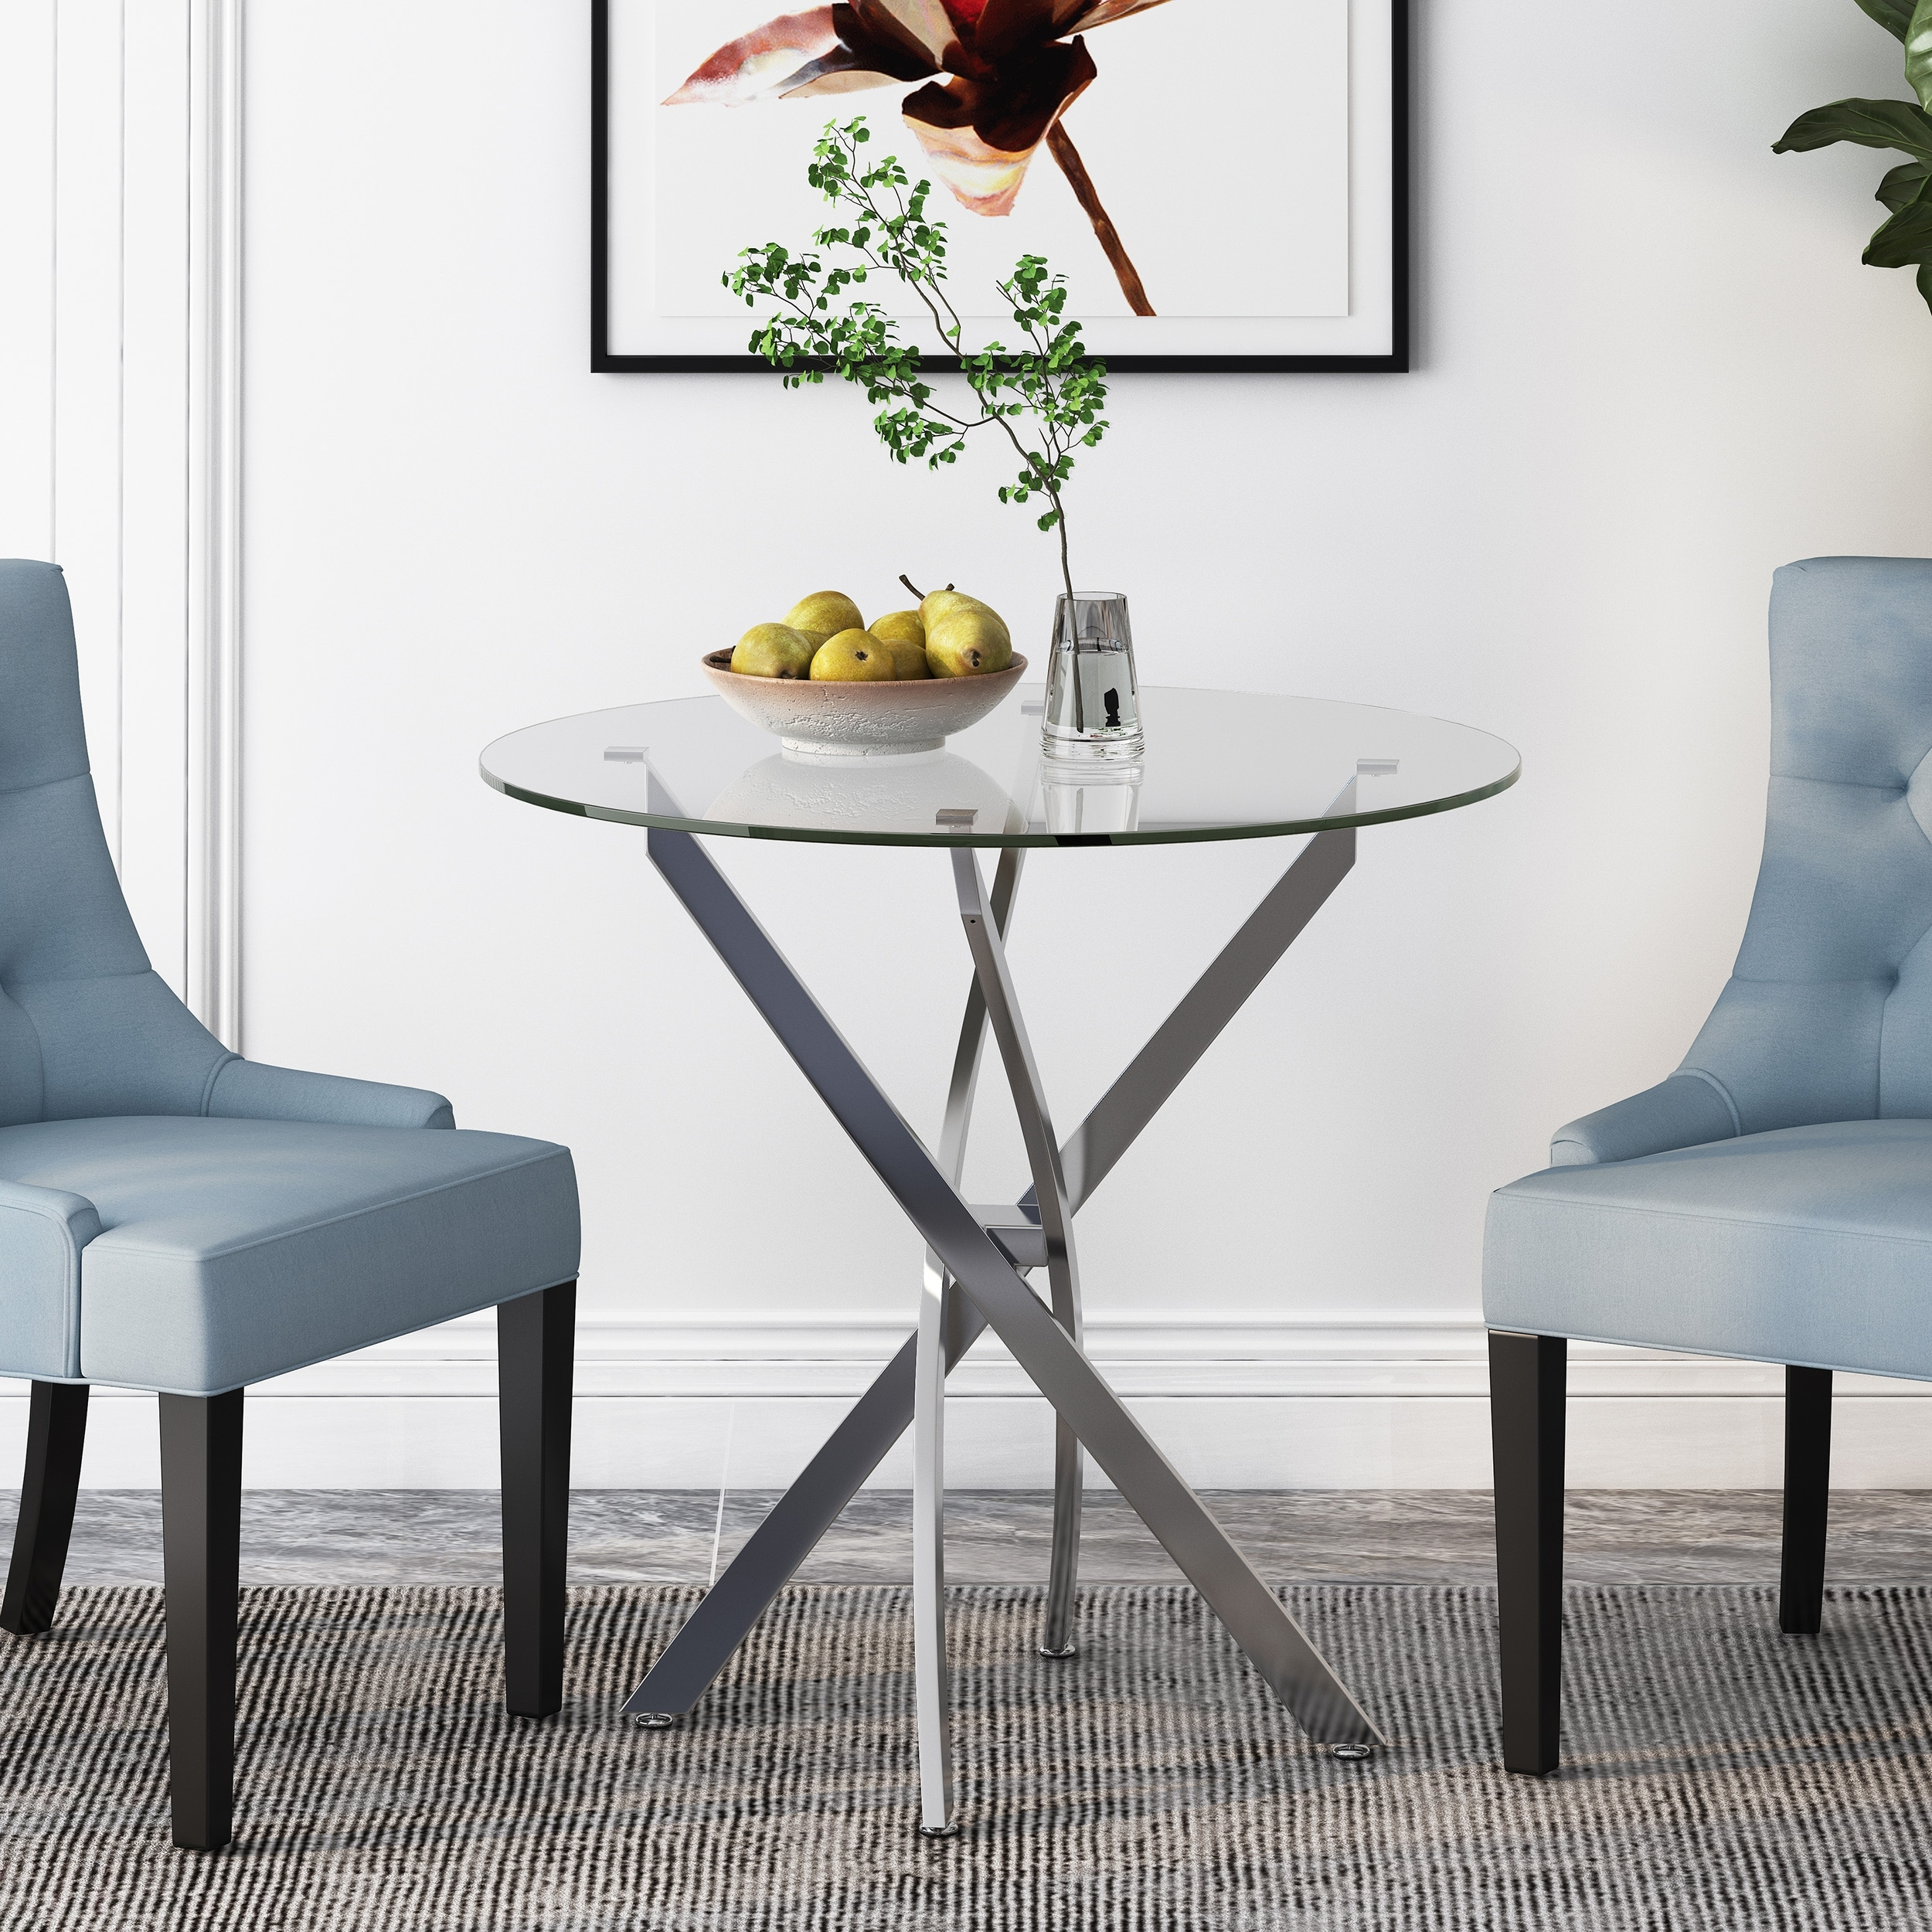 Kiara Contemporary Stainless Steel Bistro Dining Table With Tempered Glass Top By Christopher Knight Home Clear Overstock 22796457